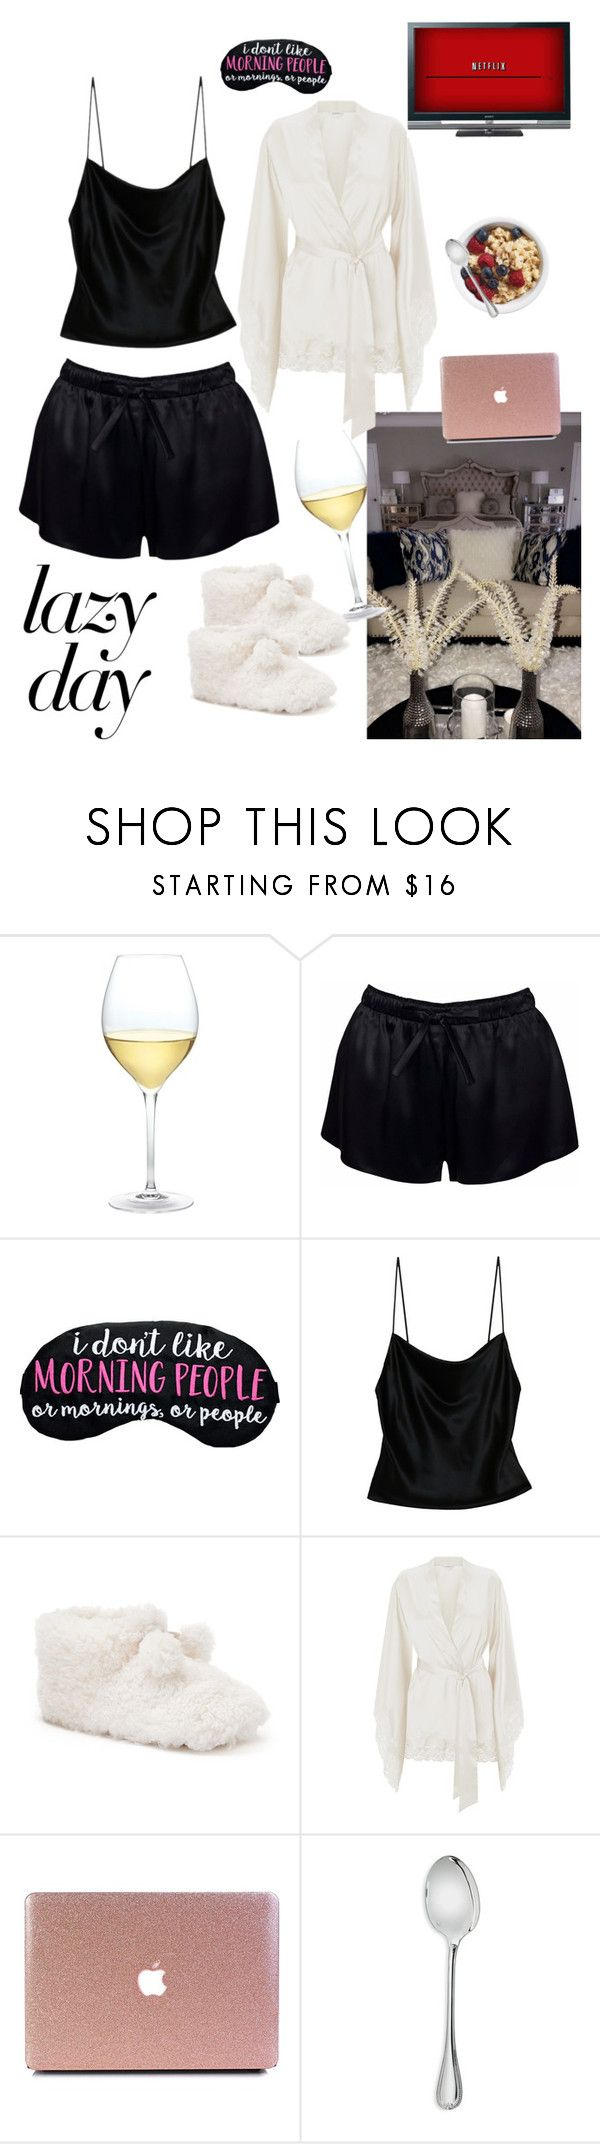 """A Date w/ My Bed"" by mikamik on Polyvore featuring Nordstrom, Fleur du Mal, SONOMA Goods for Life, La Perla, Sony and Christofle"